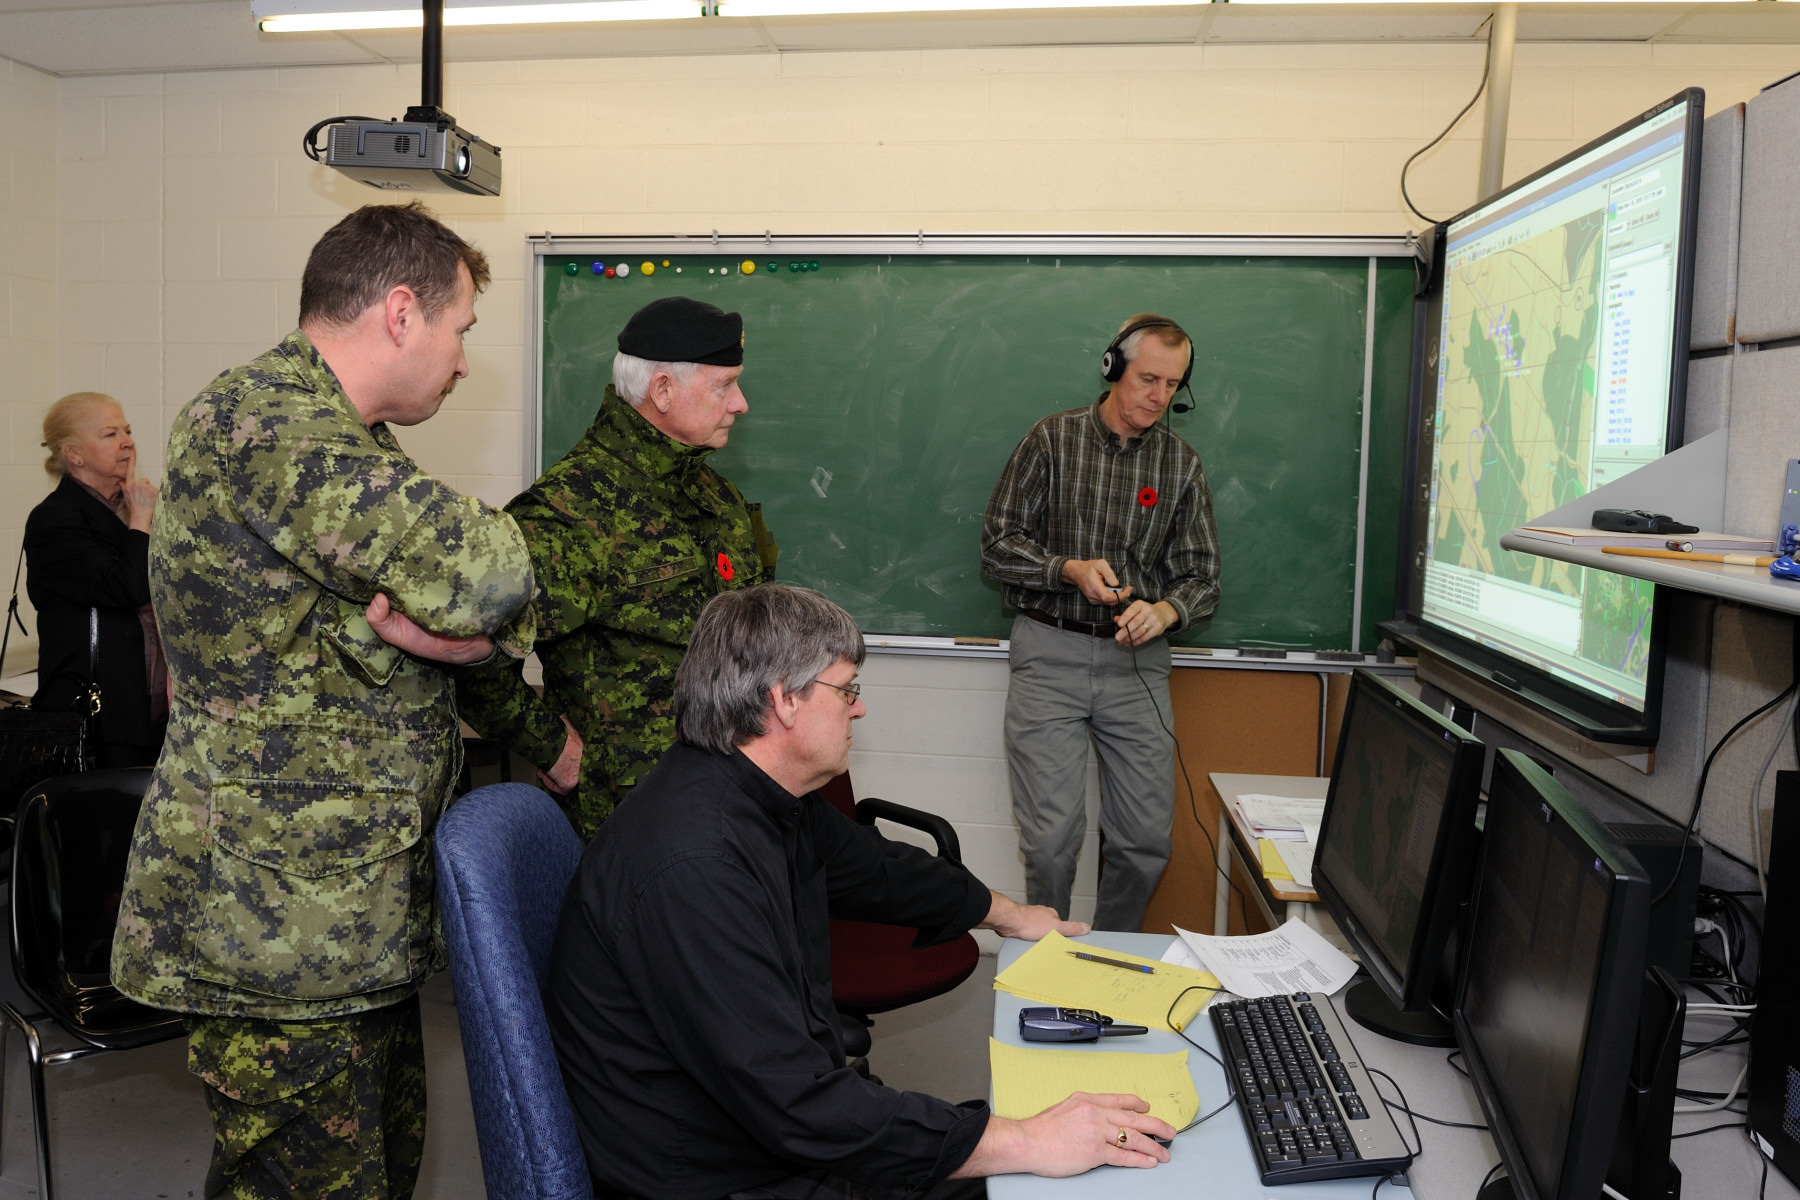 At the Combat Training Centre, His Excellency discovered the technical and operational work conducted by staff members from Royal Canadian Regiment.